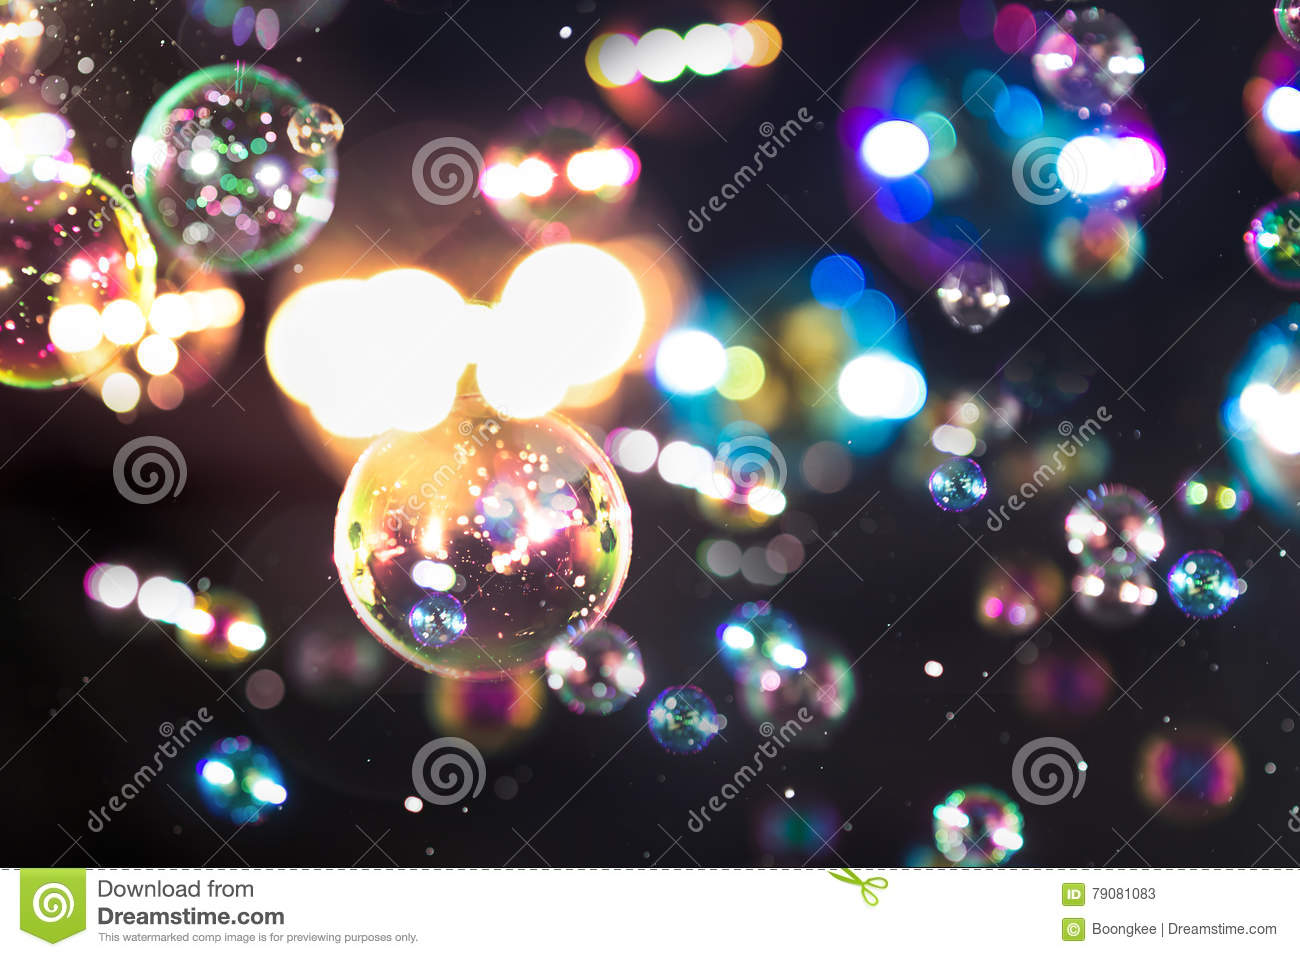 Blur Abstract Colorful Soap Bubbles Wallpaper Isolated On Black Background